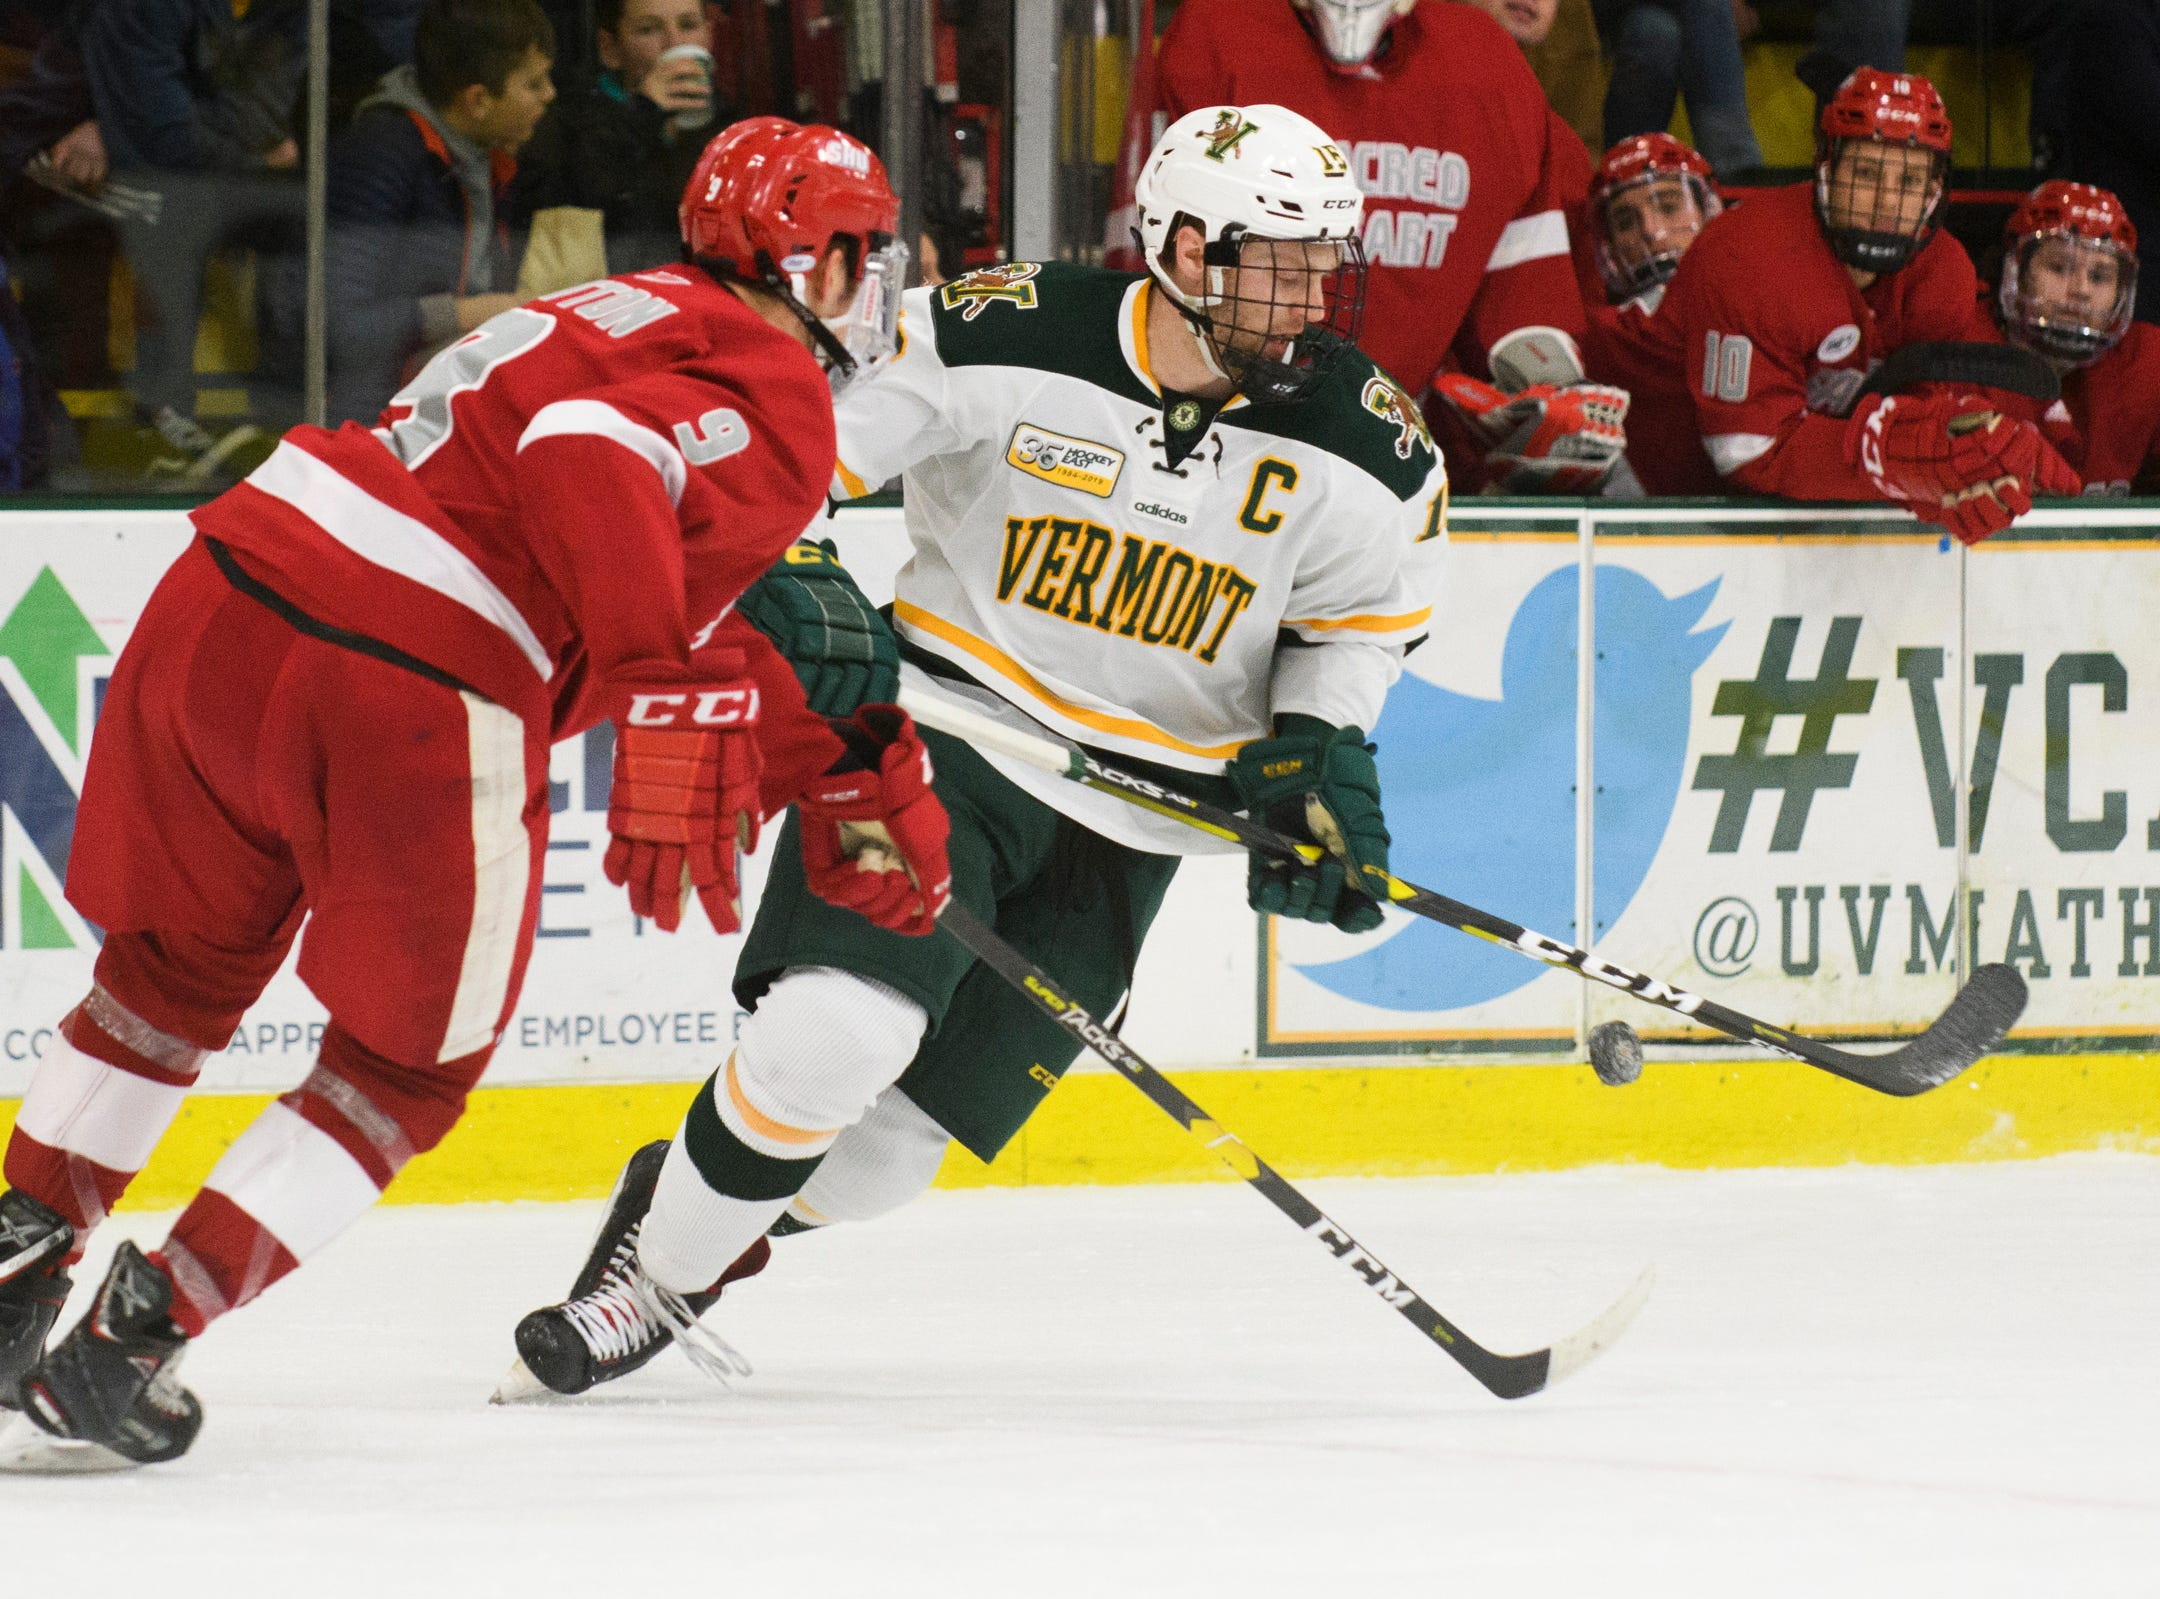 Vermont forward Derek Lodermeier (16) skates with the puck during the men's hockey game between the Sacred Heart Pioneers and the Vermont Catamounts at Gutterson Field House on Friday night January 4, 2019 in Burlington.